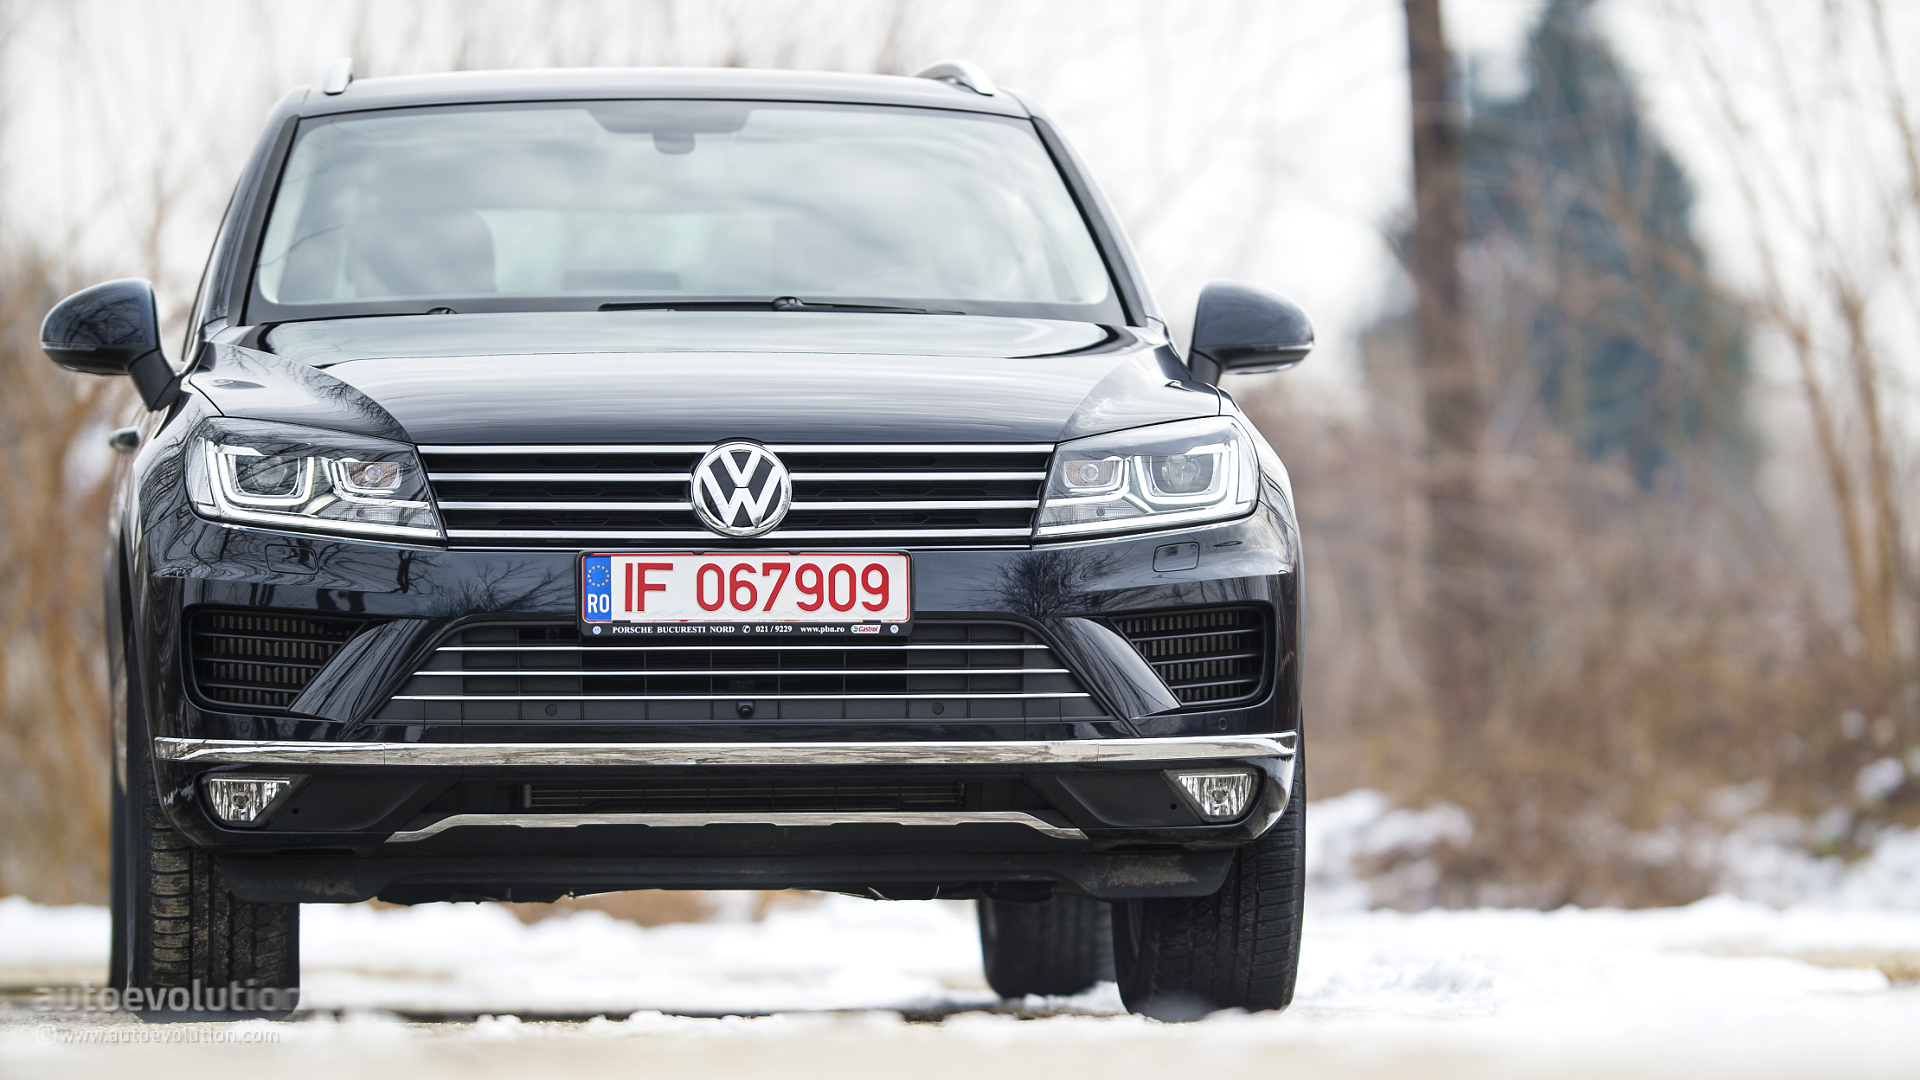 Volkswagen Touareg Wallpapers and Background Images   stmednet 1920x1080